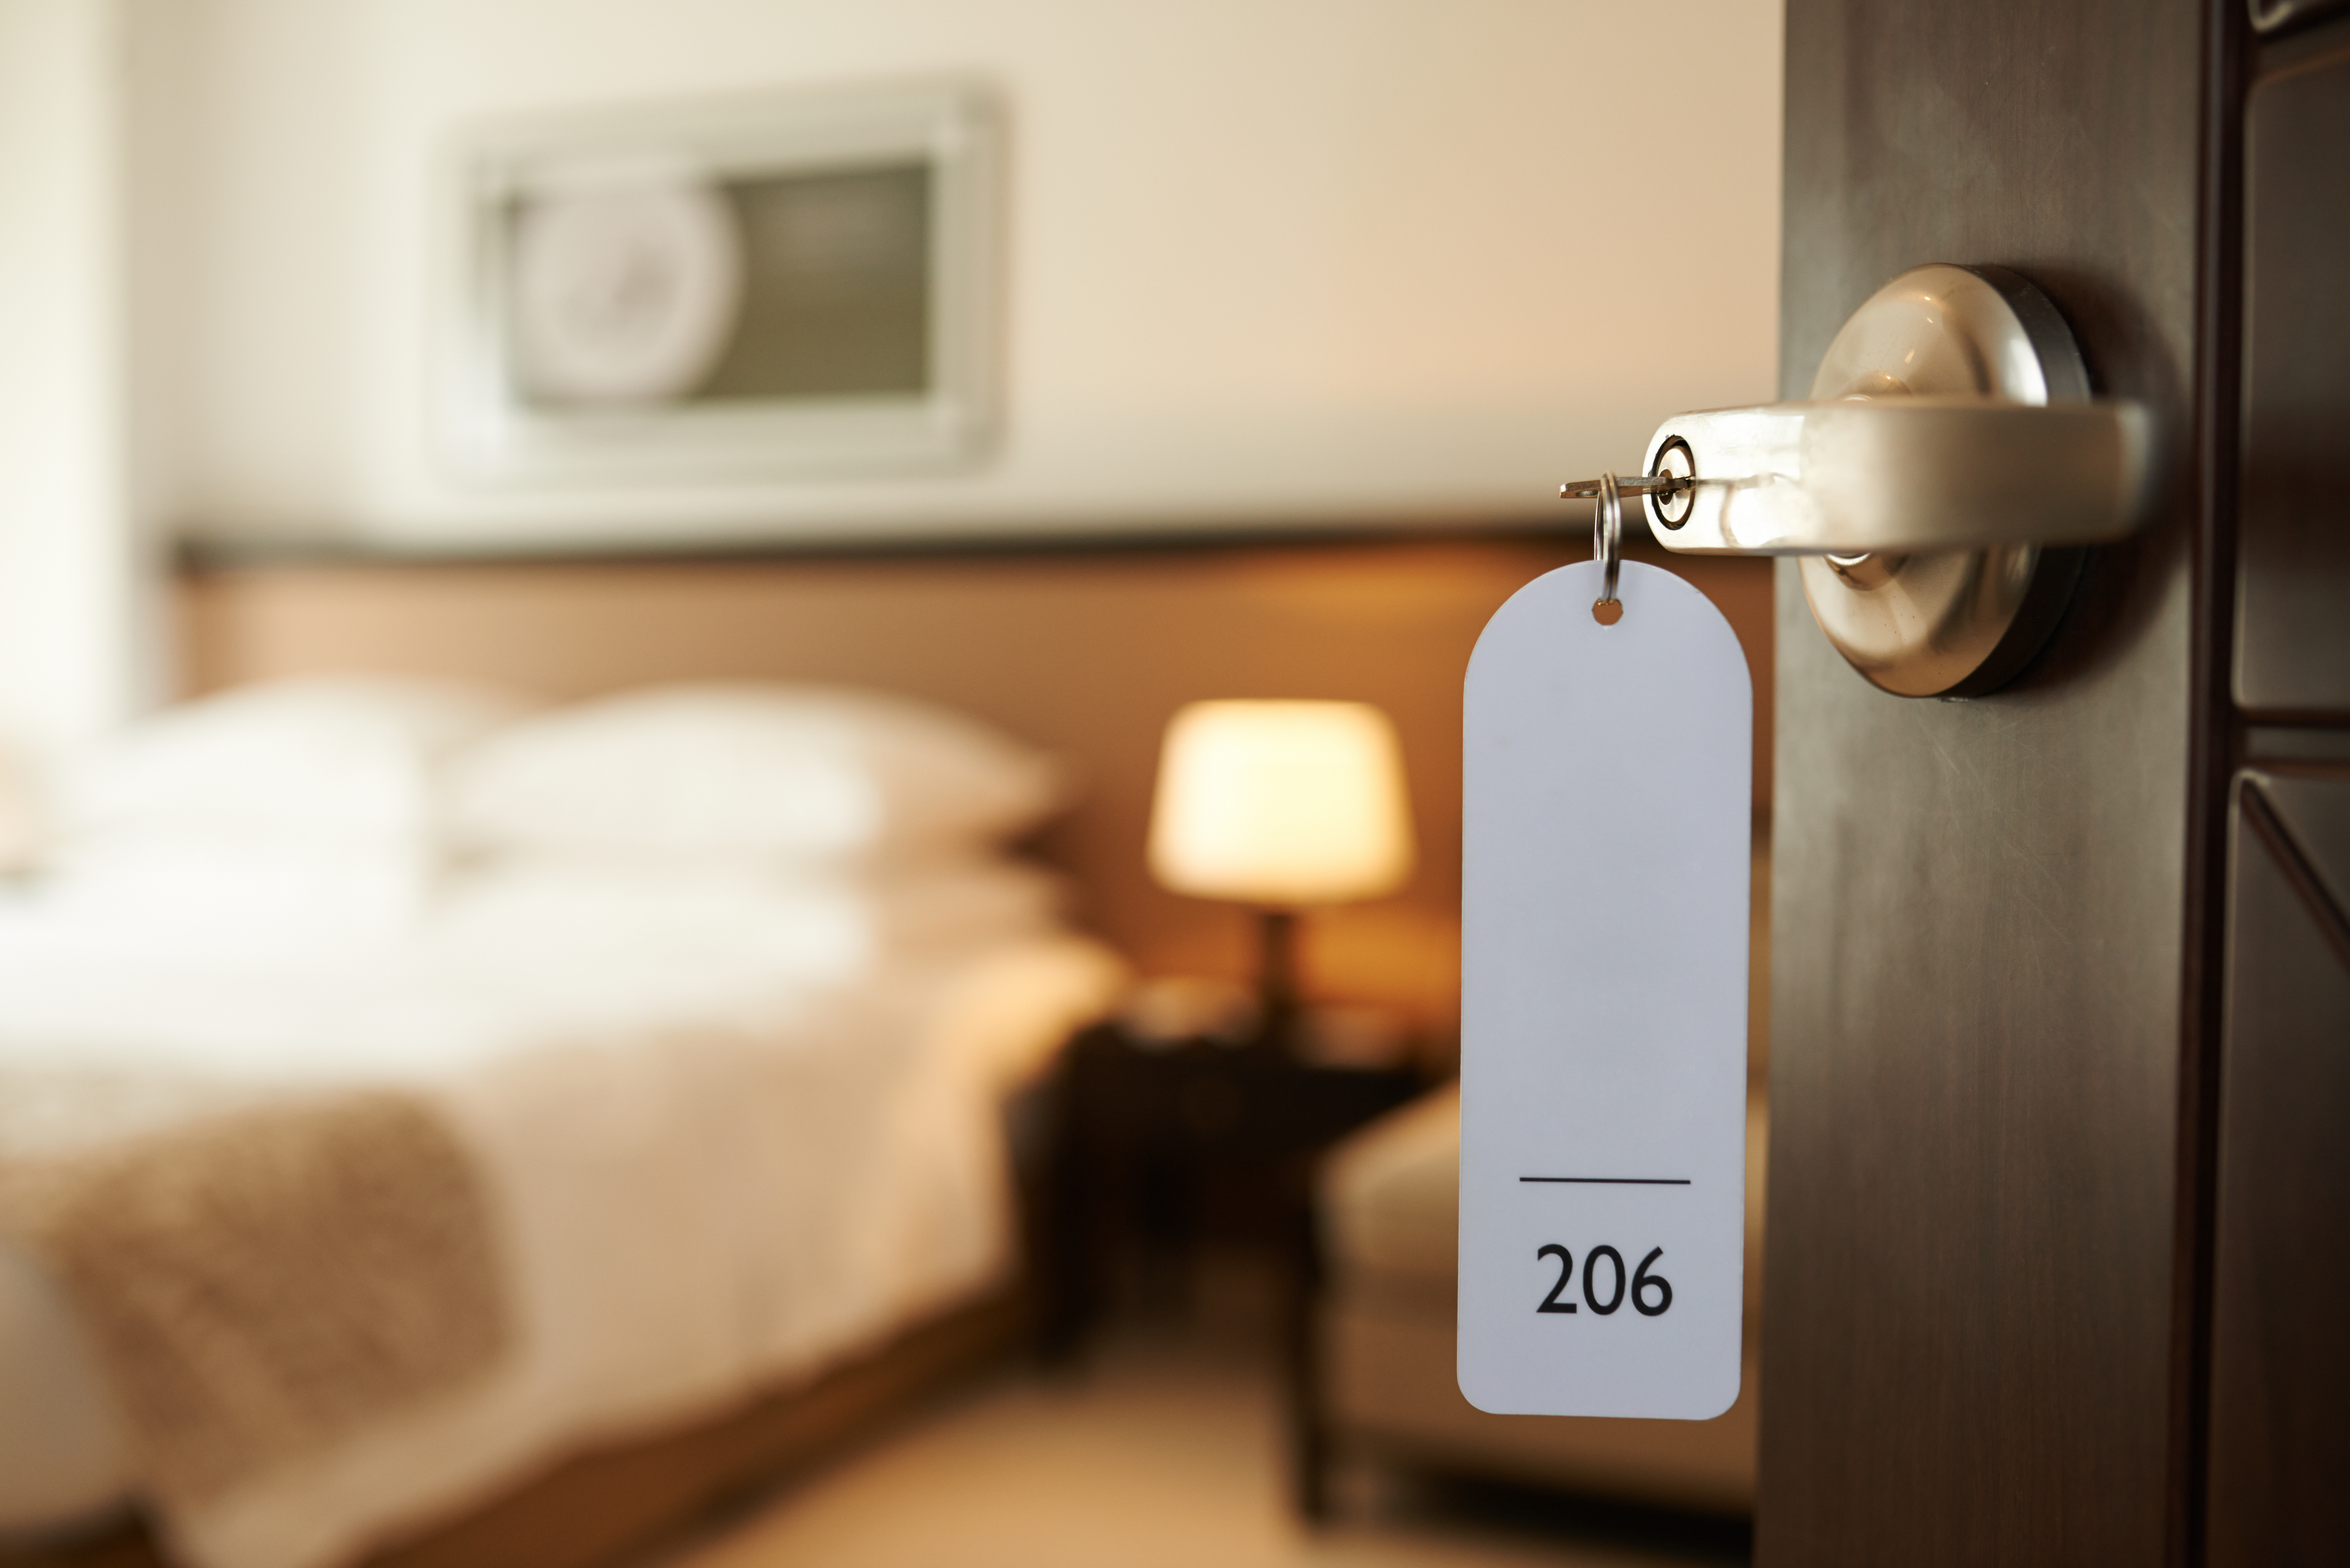 HOW TO MAKE YOUR HOTEL ROOM MORE WELLNESS-FRIENDLY